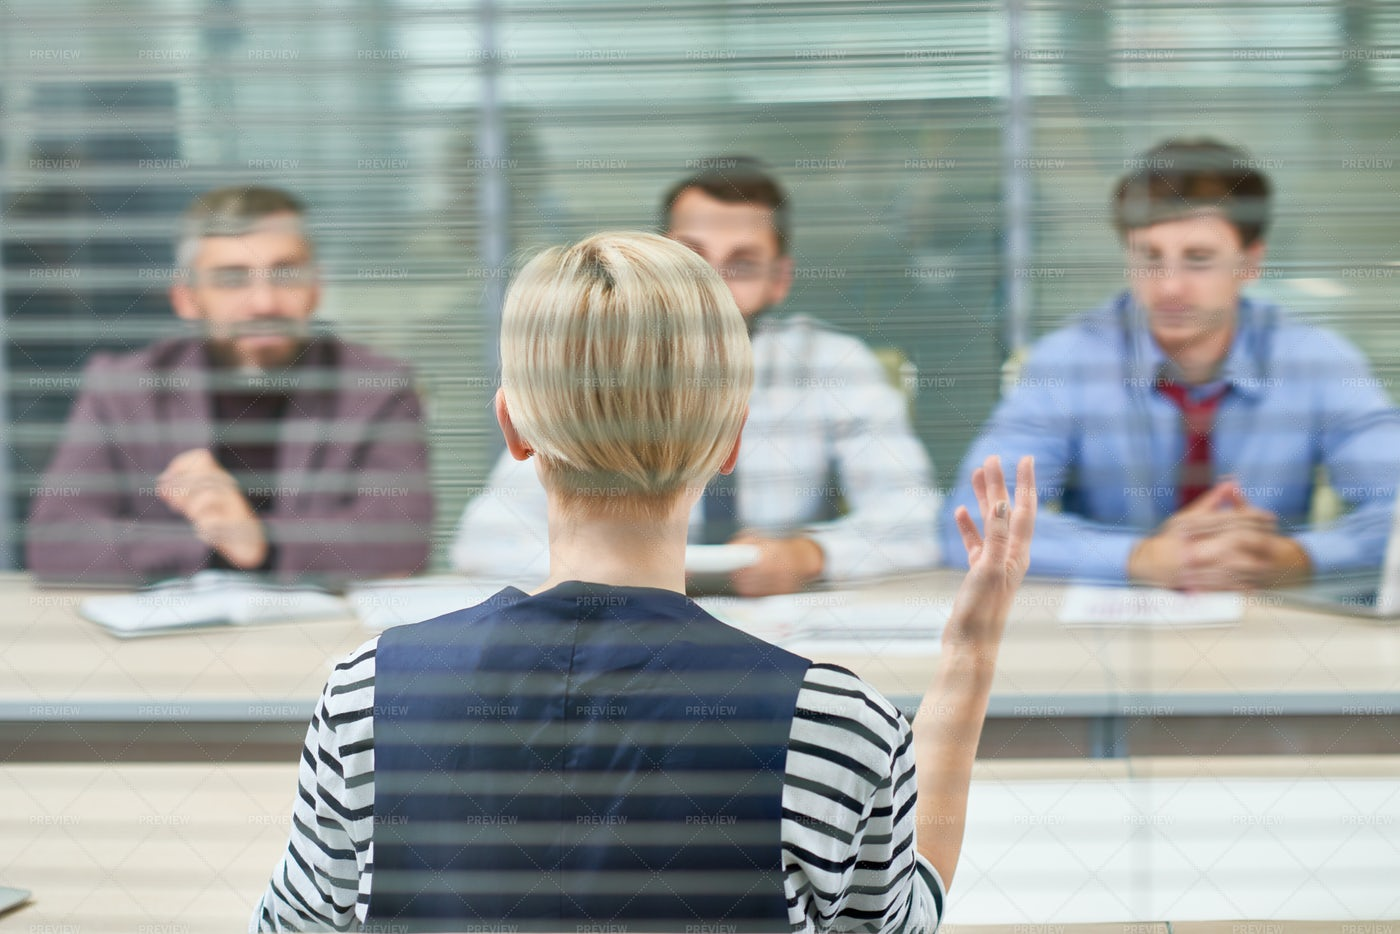 Discussing Start-up Project With...: Stock Photos